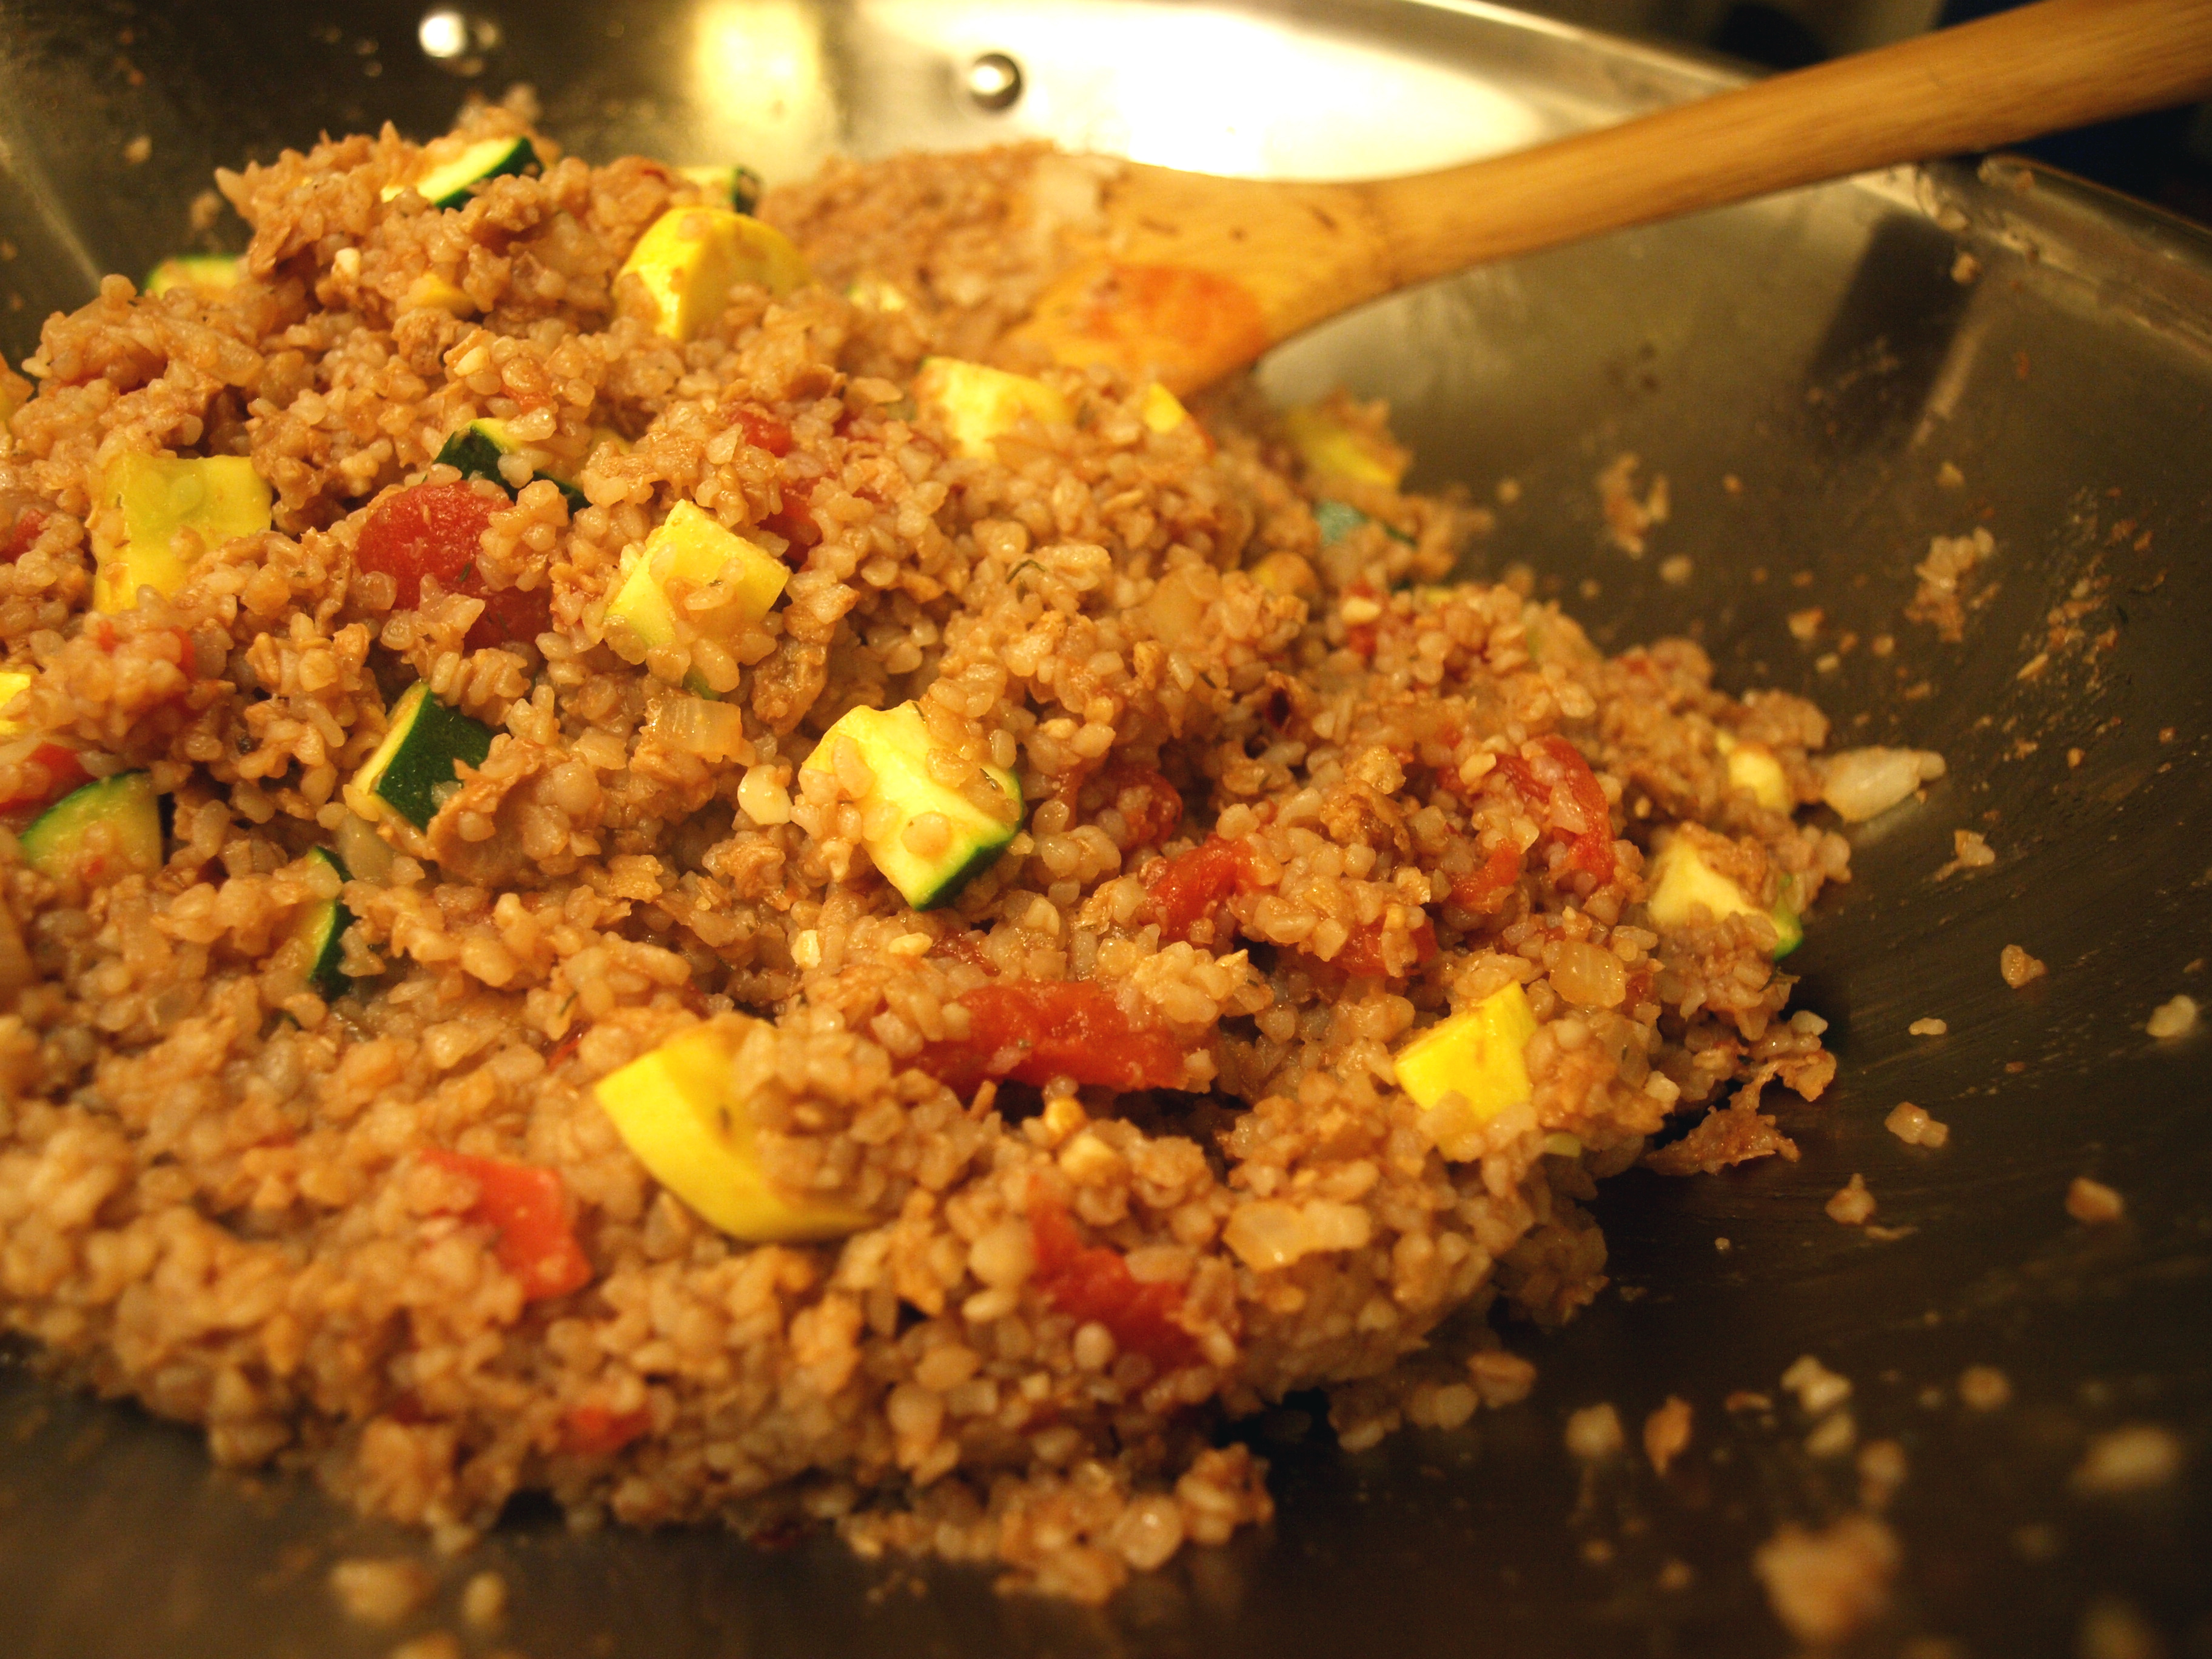 Stuffed pepper filling kasha